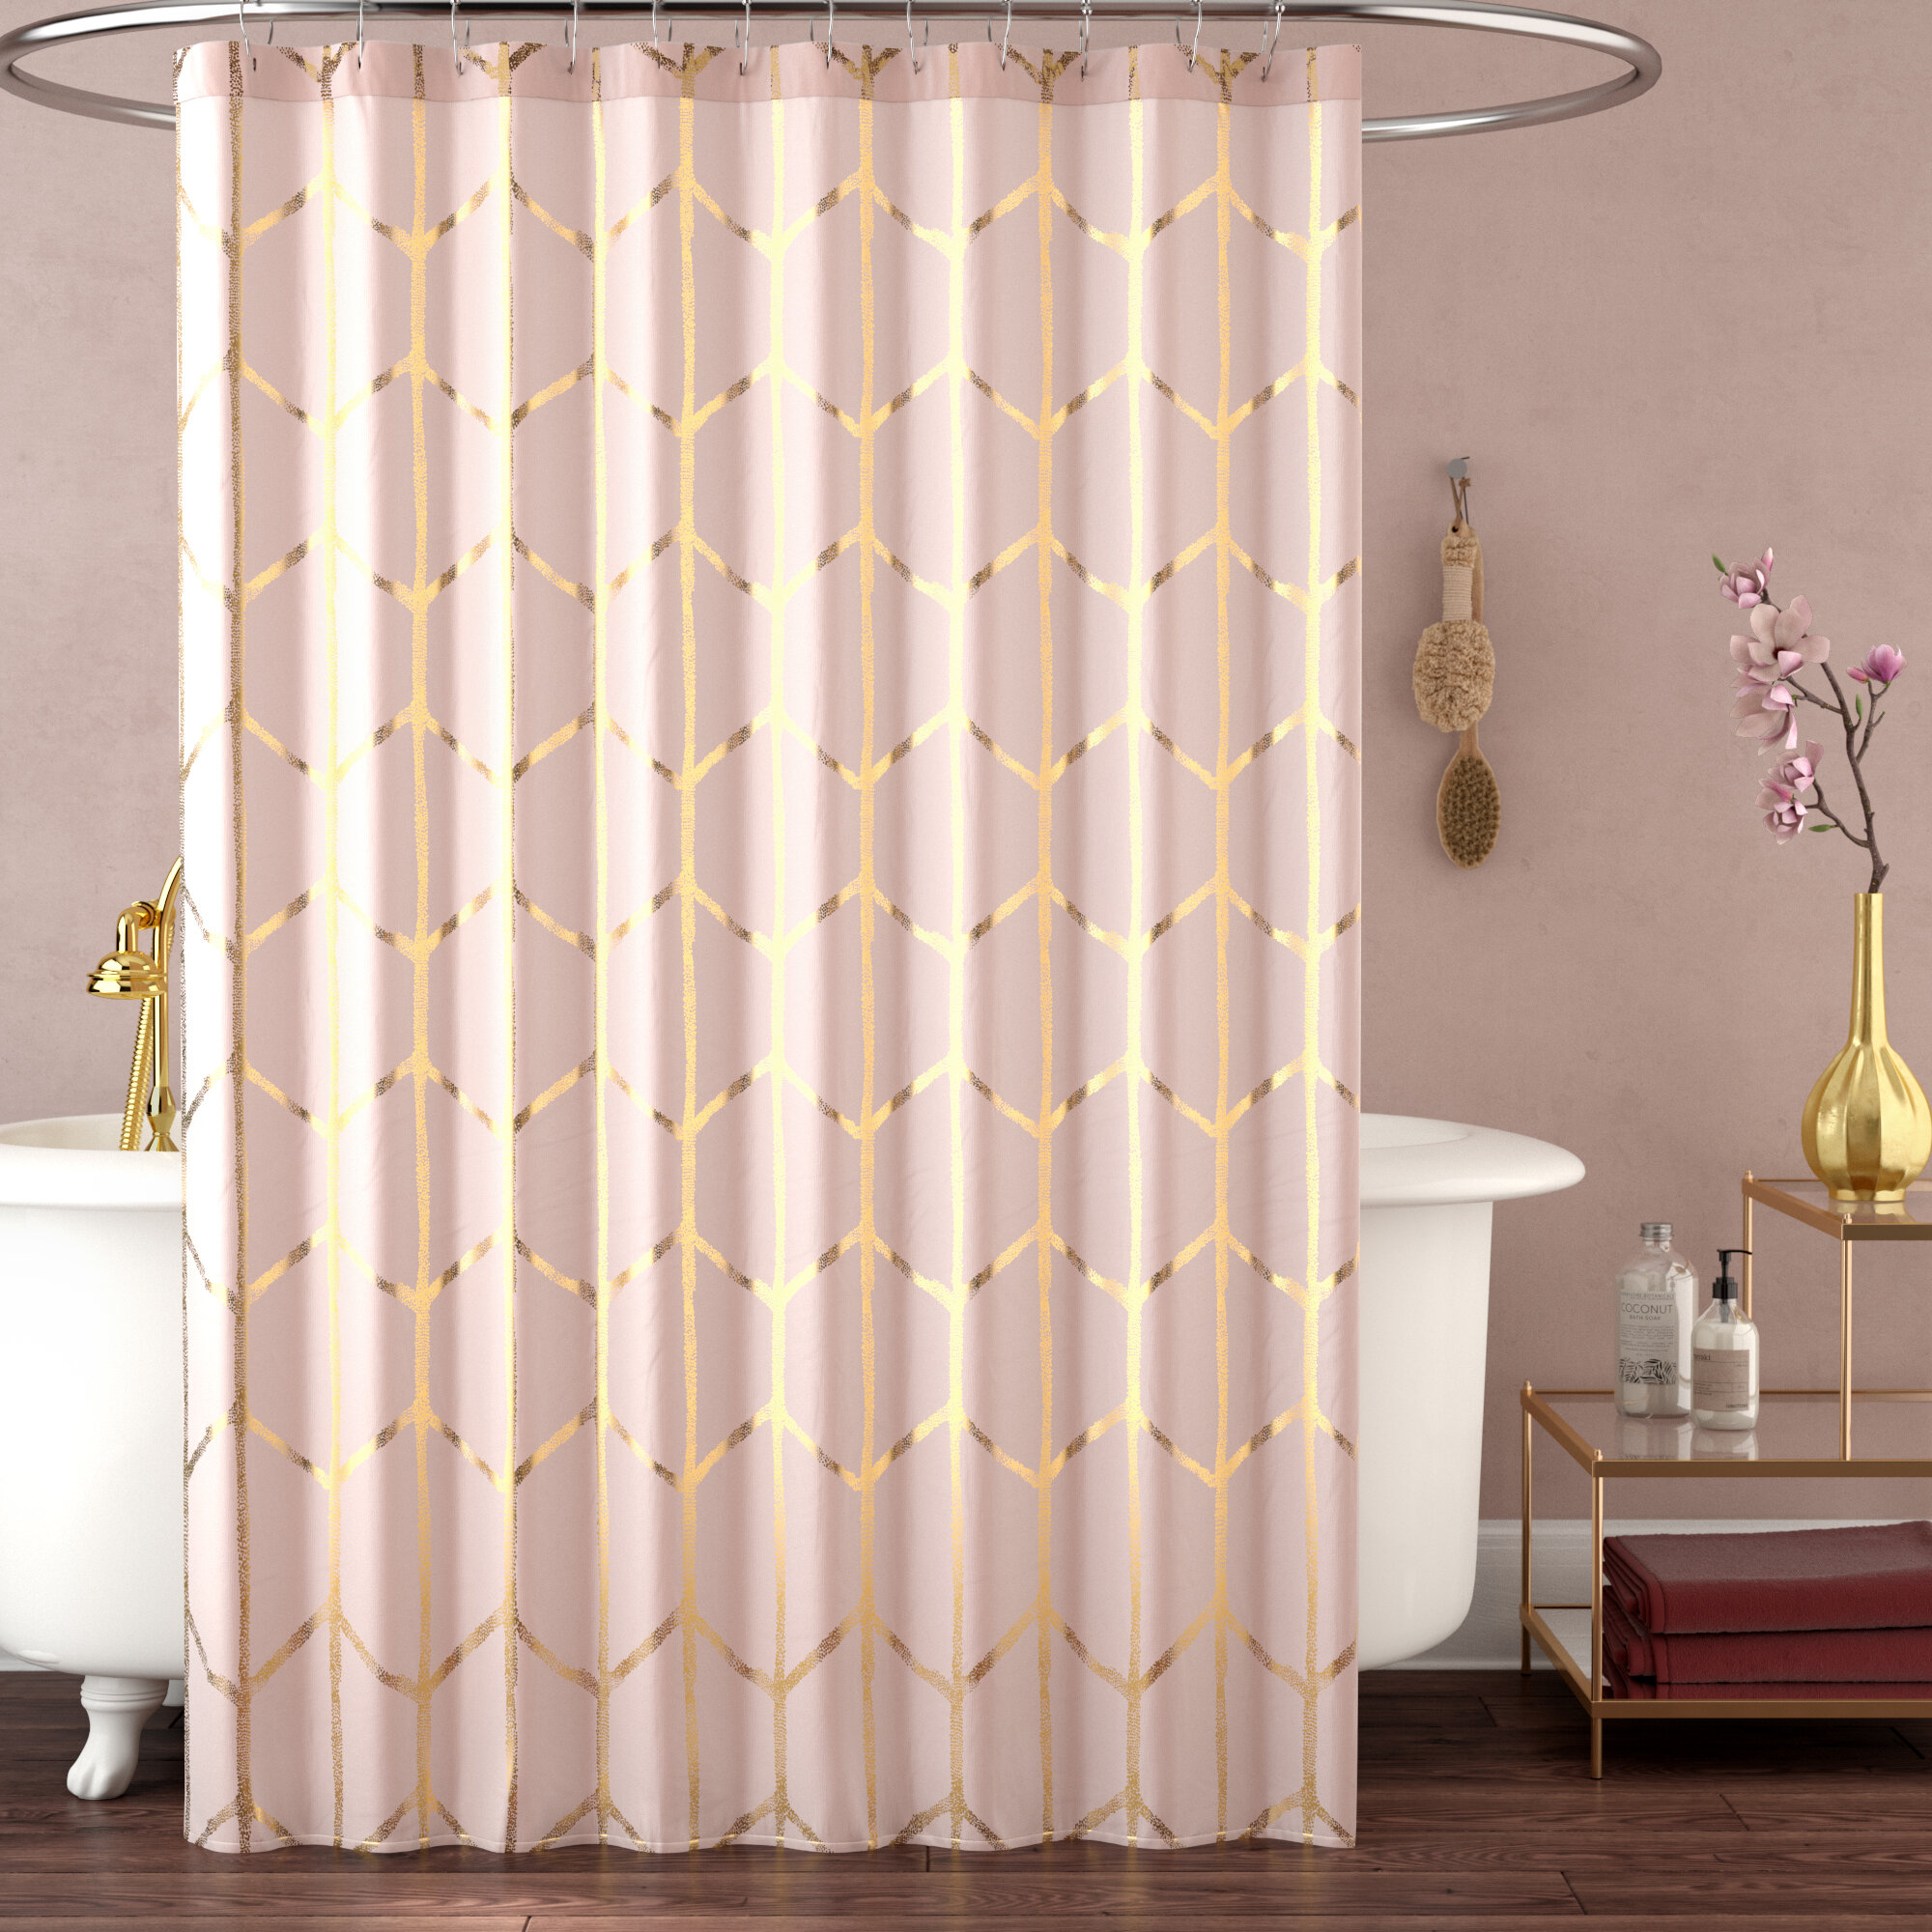 Willa Arlo Interiors Mangesh Microfiber Shower Curtain Reviews